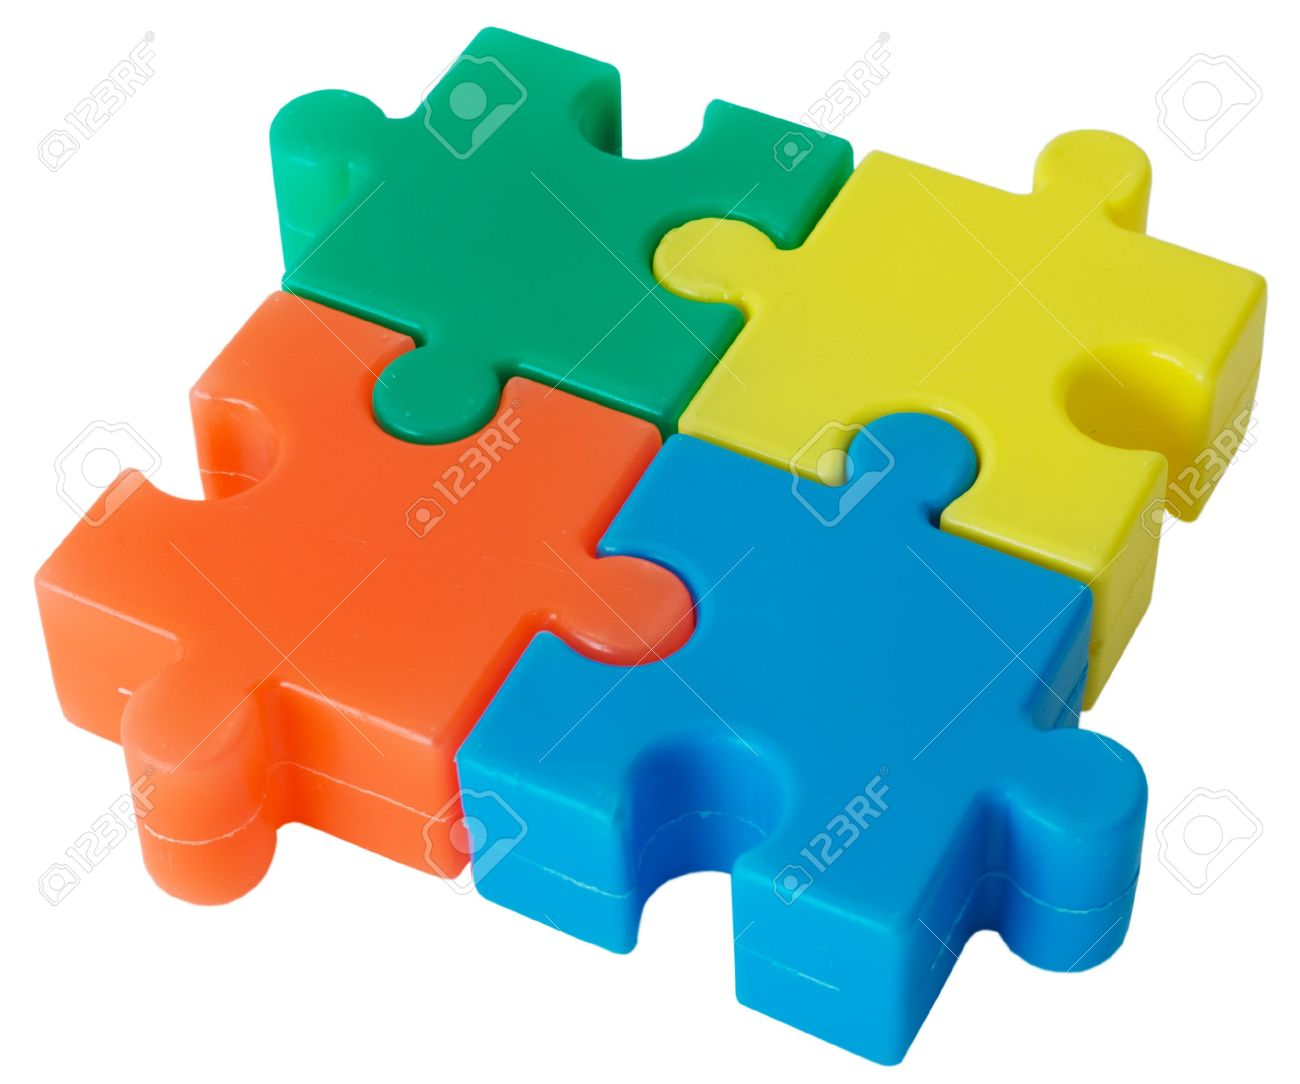 Plastic Colored Figure From Slices Puzzle On The White Background.